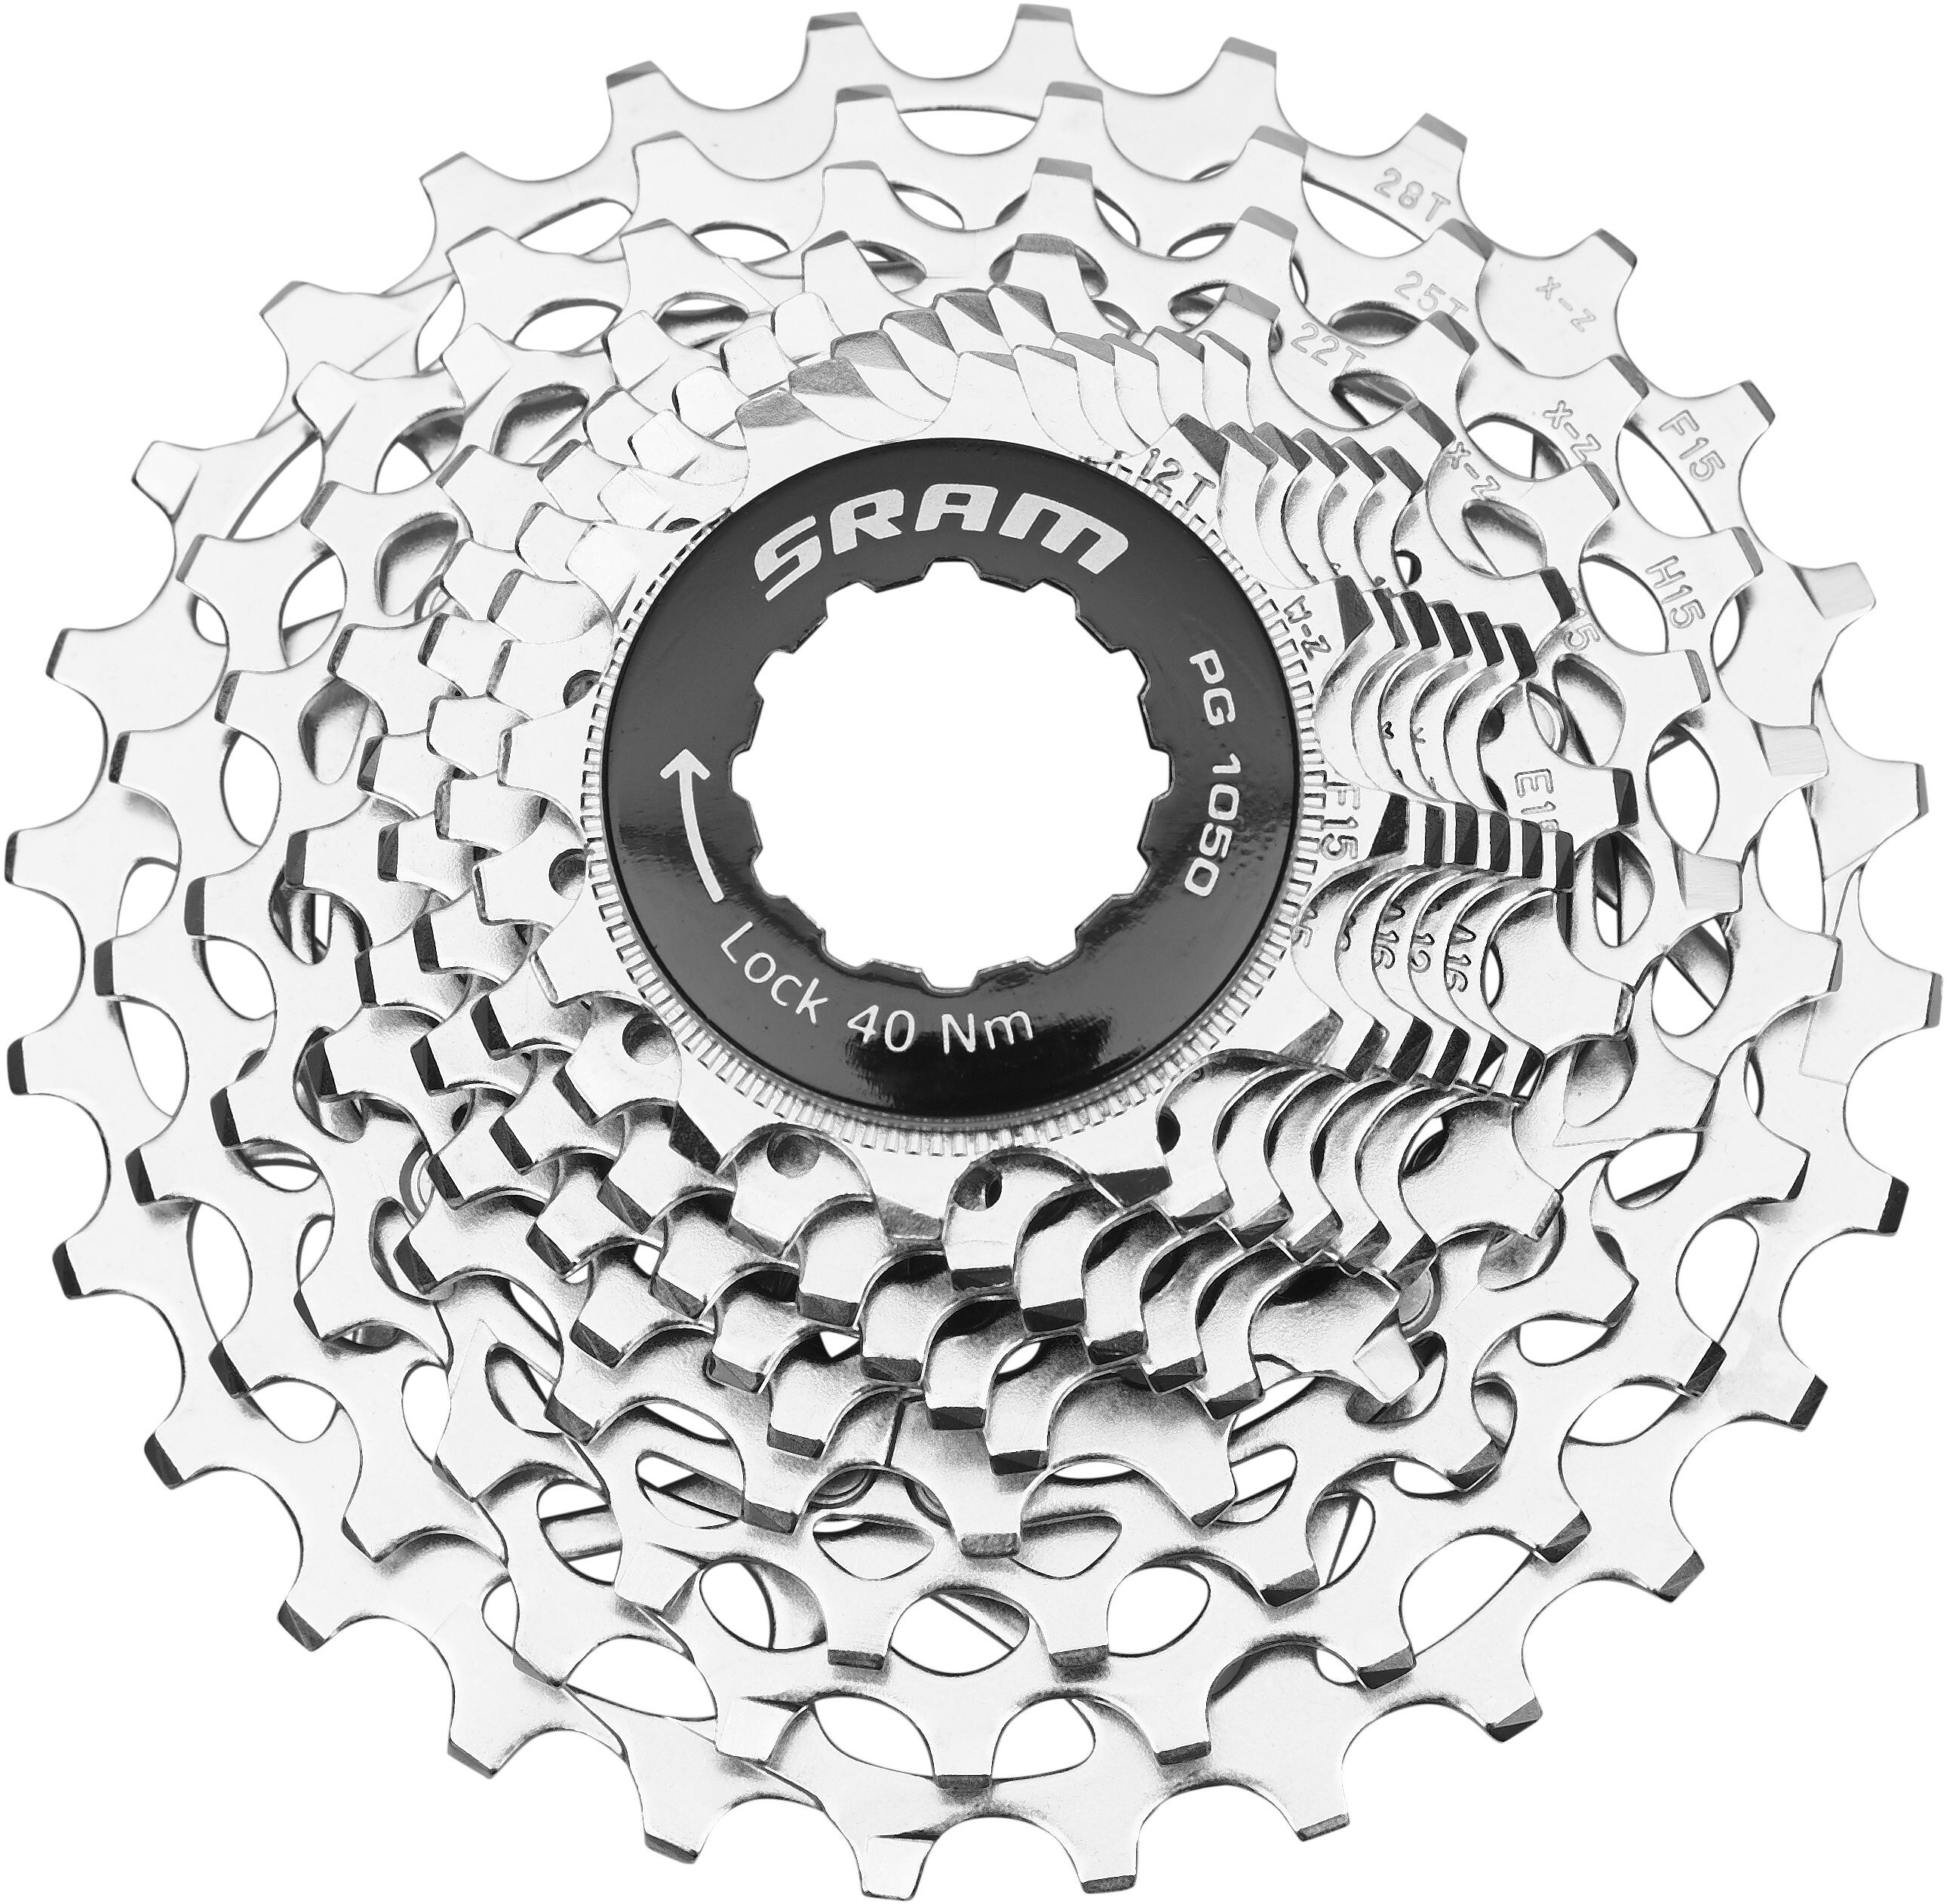 SRAM PG-1050 PowerGlide Cassette 12-27 teeth silver